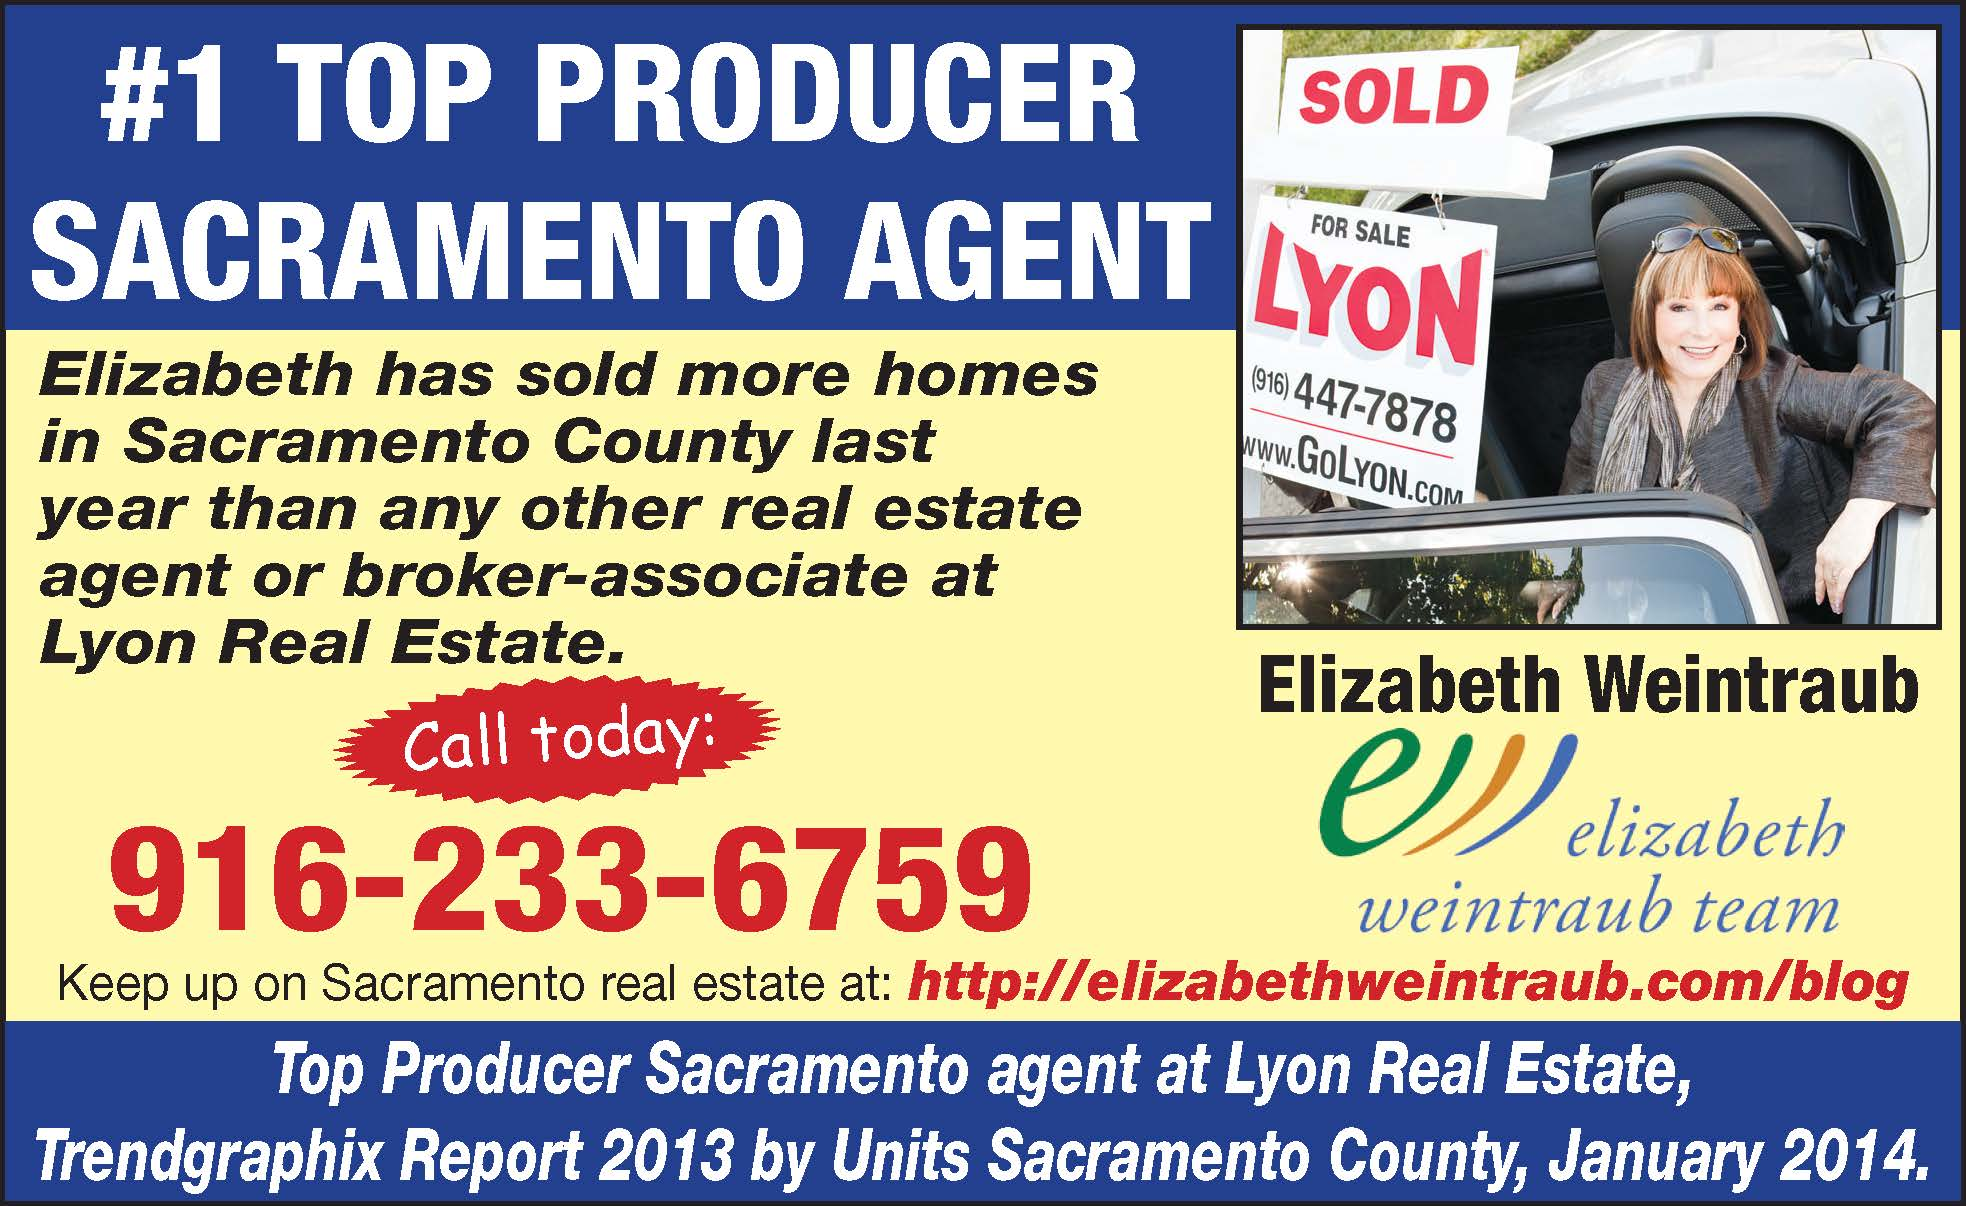 What Makes a Sacramento Real Estate Agent the #1 Top Producer?